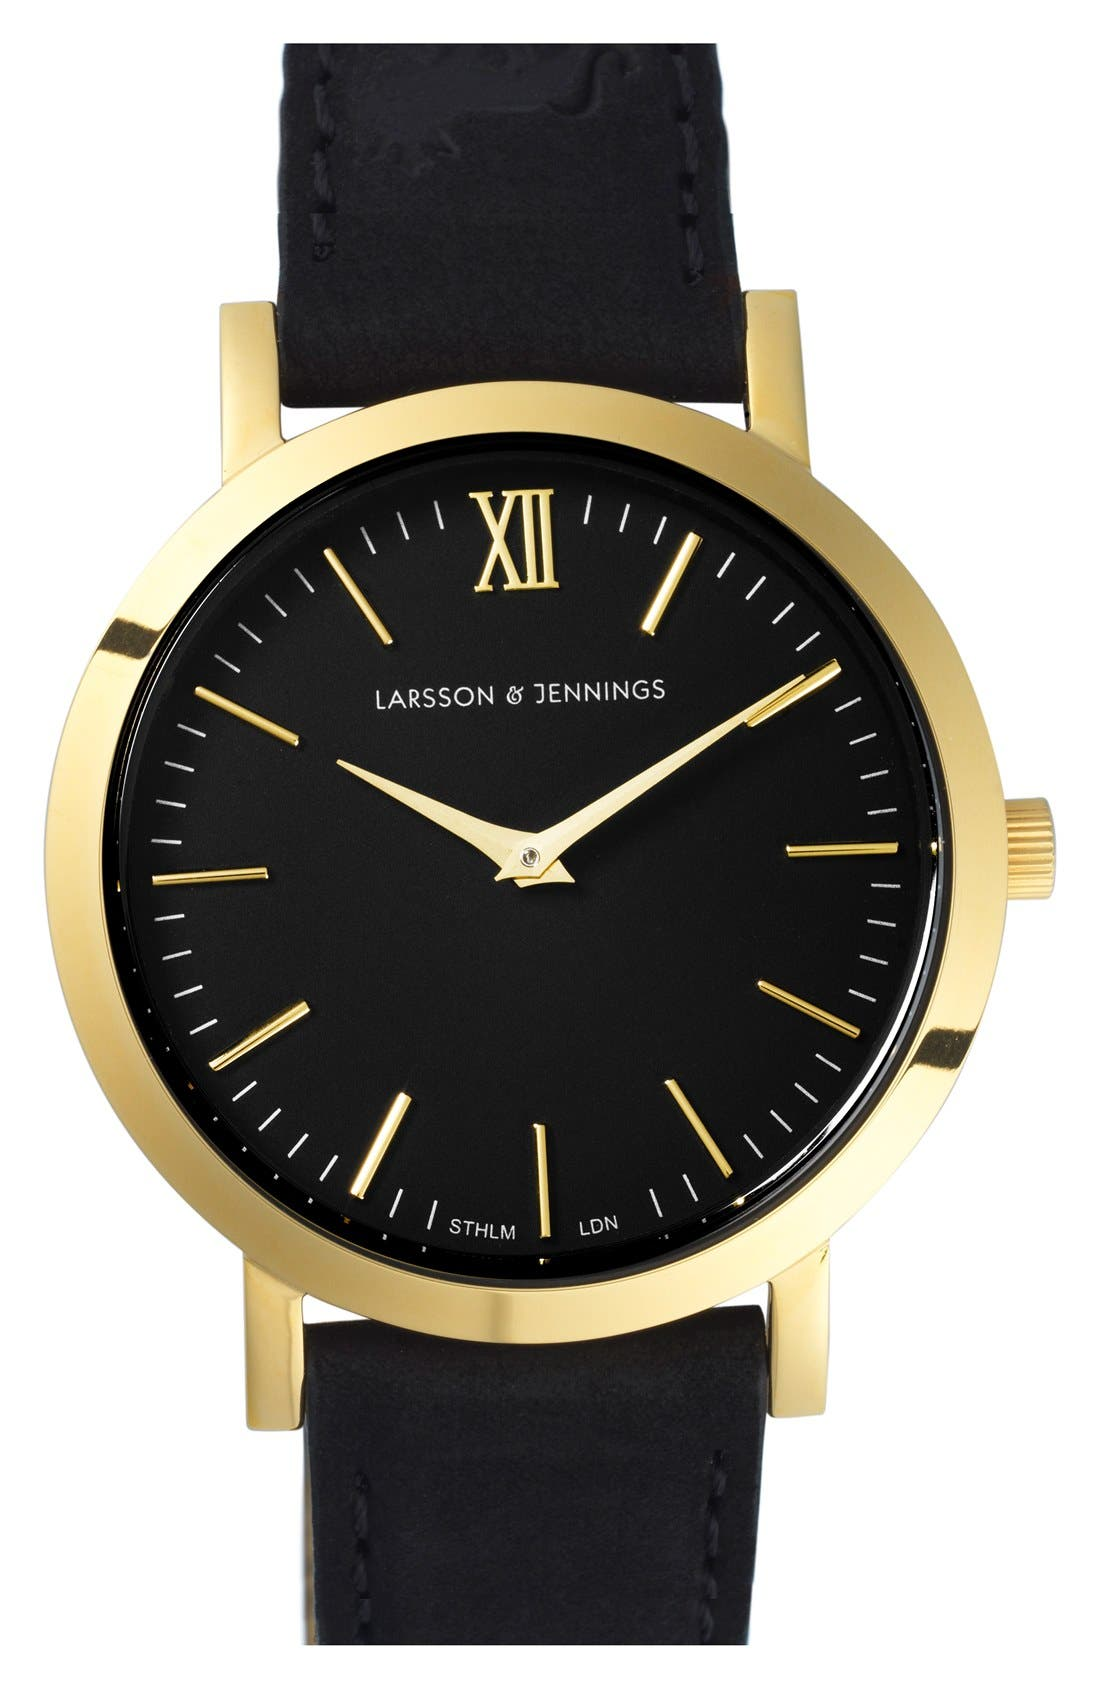 LARSSON & JENNINGS 'Lugano' Leather Strap Watch, 33mm